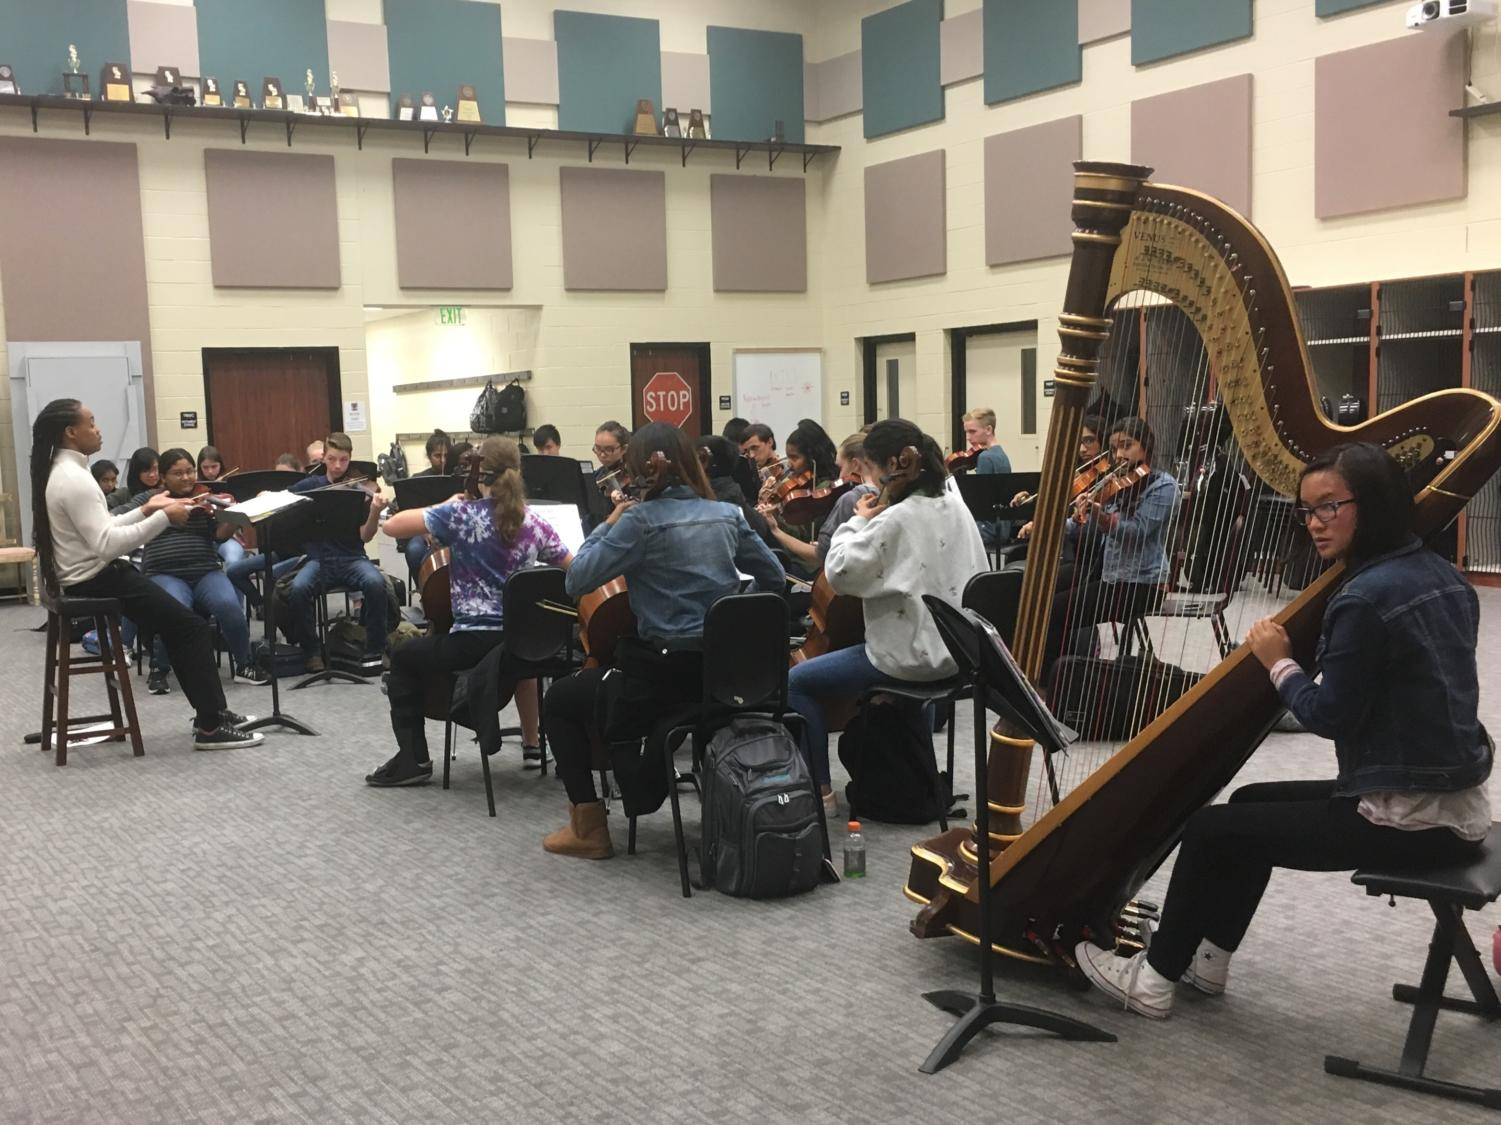 The orchestra members practice Wednesday for their upcoming concert on Oct. 18 at 6:30 p.m. in the high school auditorium. Student musicians Alejandra Maldonado and Warren Tseng advanced at the Region 24 All-Region auditions.